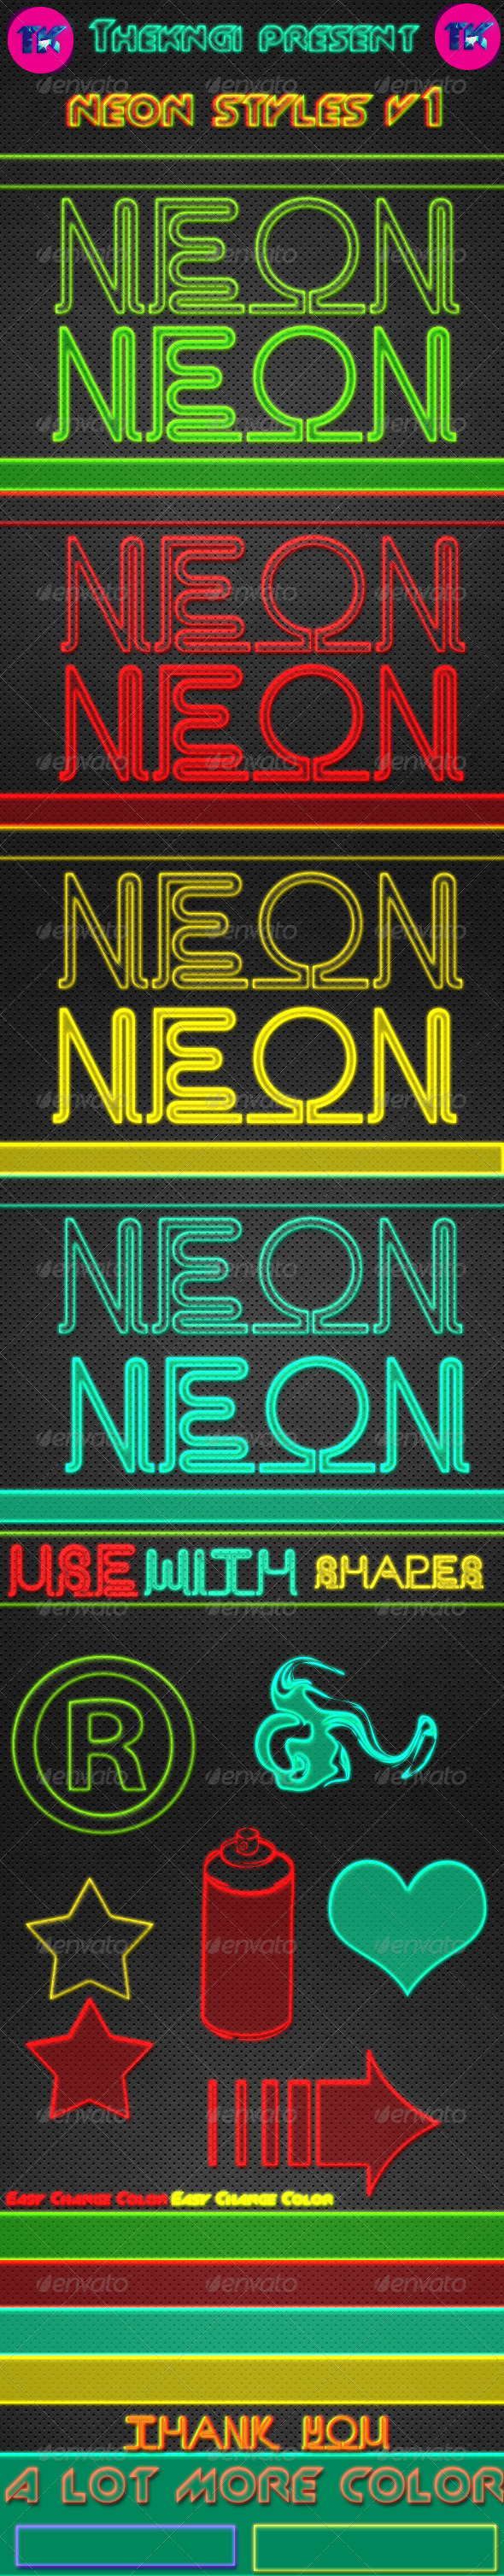 GraphicRiver Neon Text Styles v1 8740081